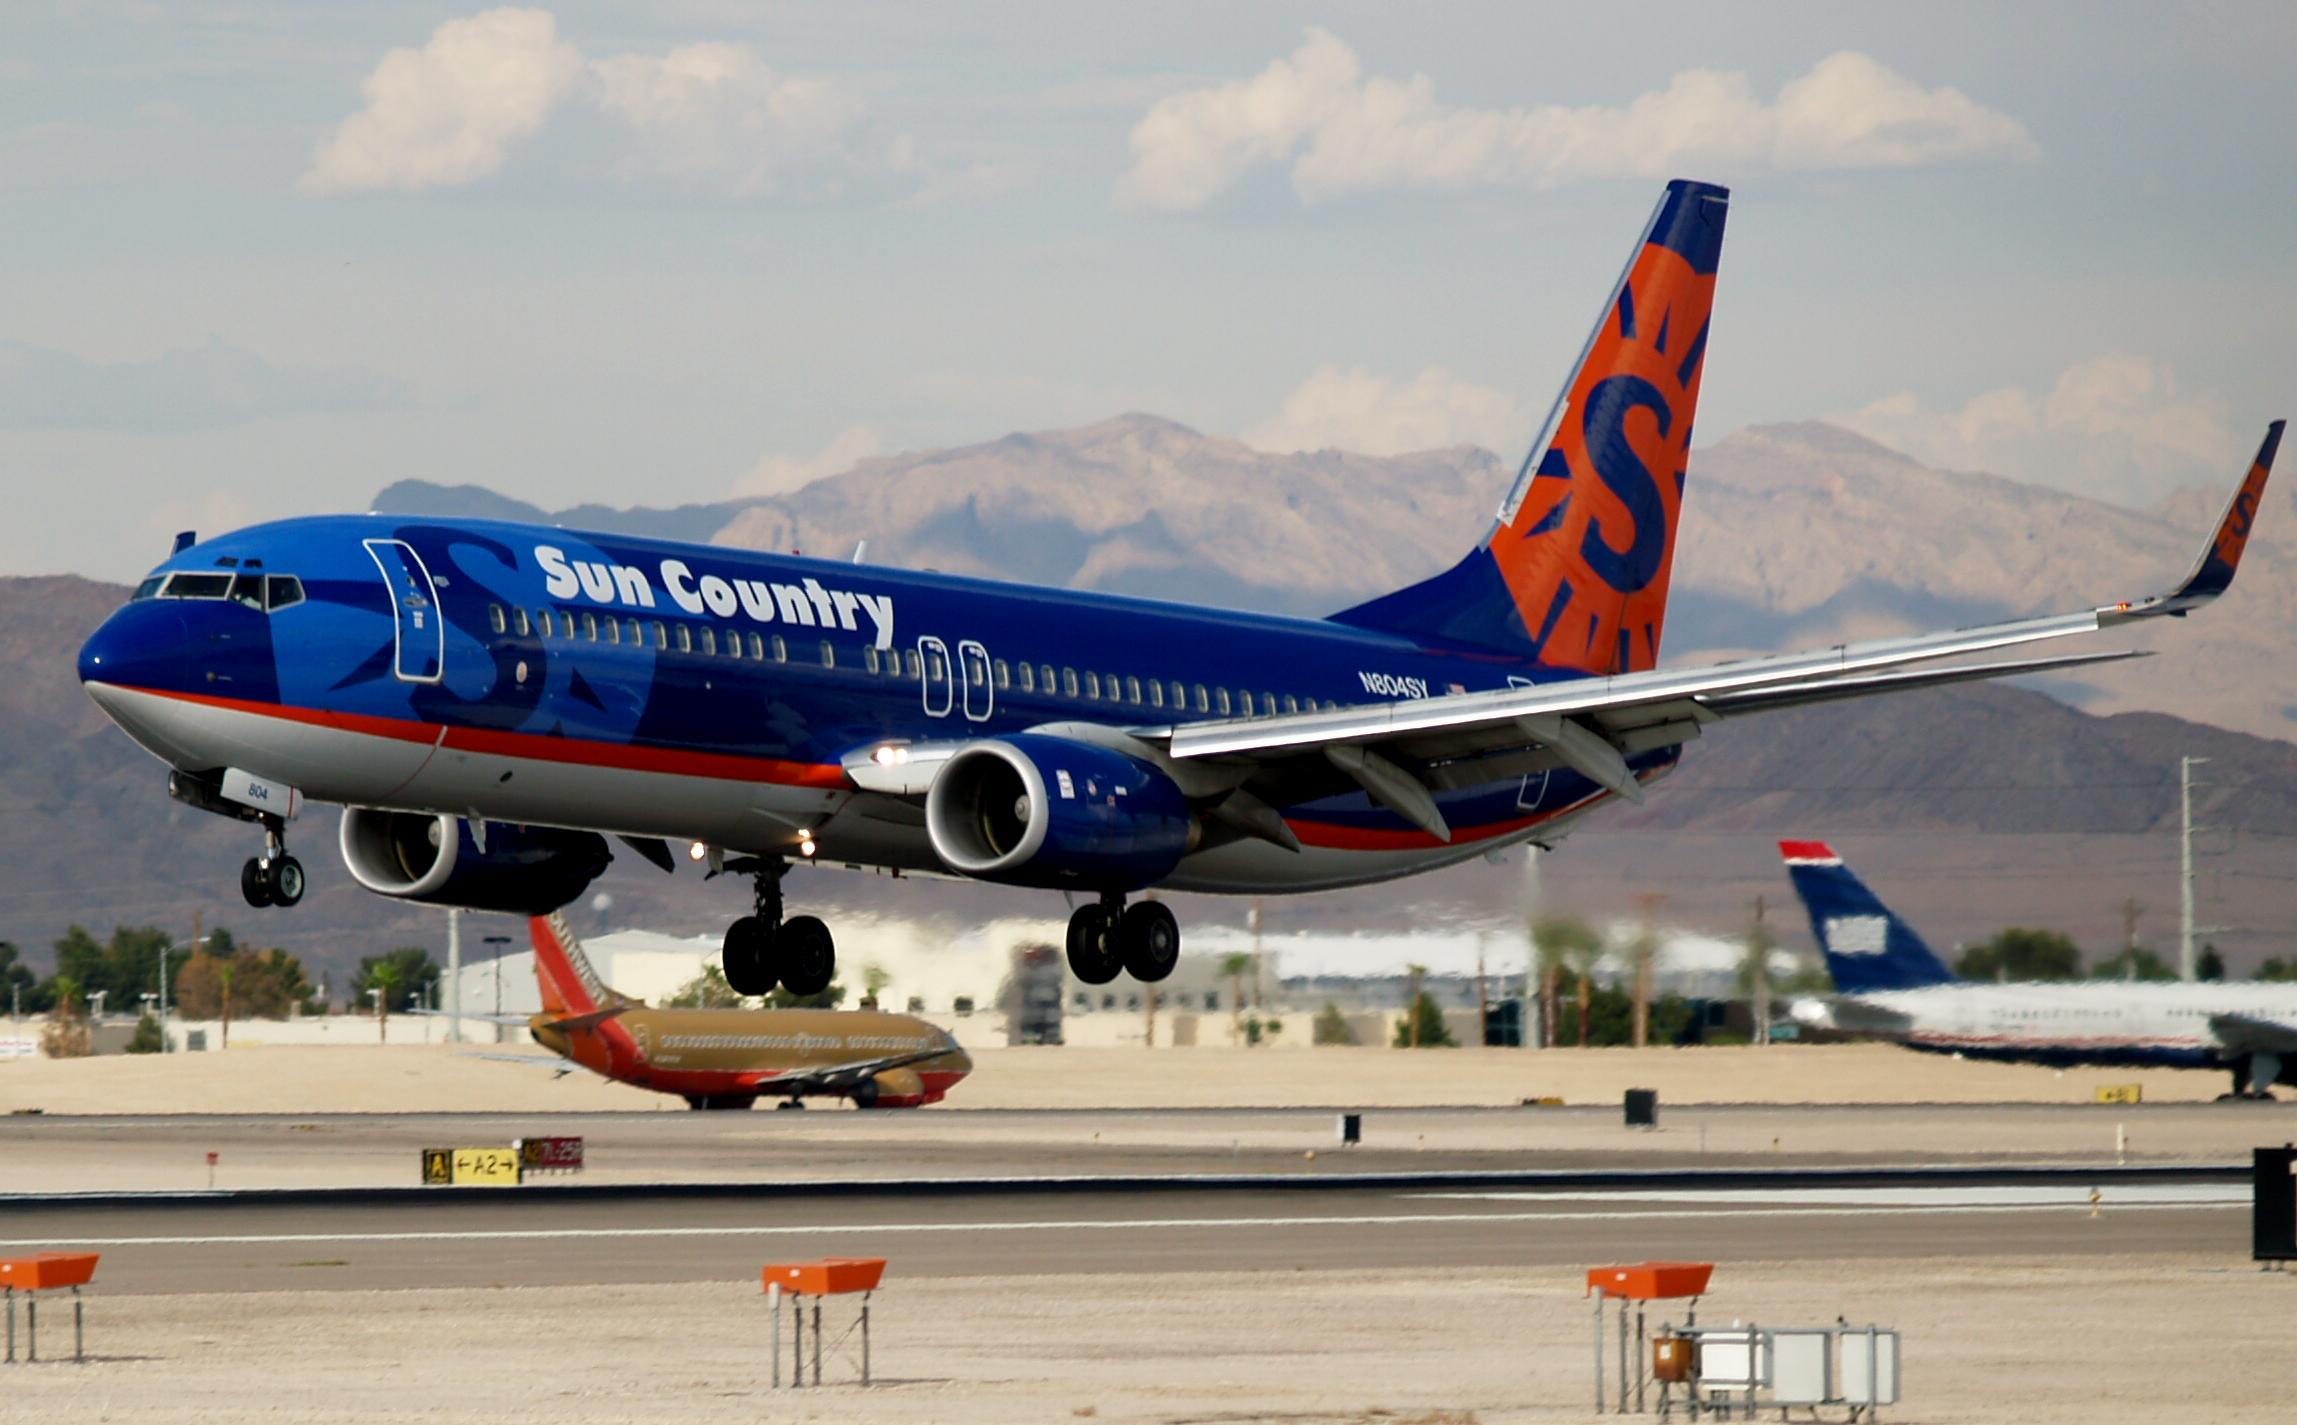 Sun Country remodels plane interiors, eliminating first class and adding slimmer seats